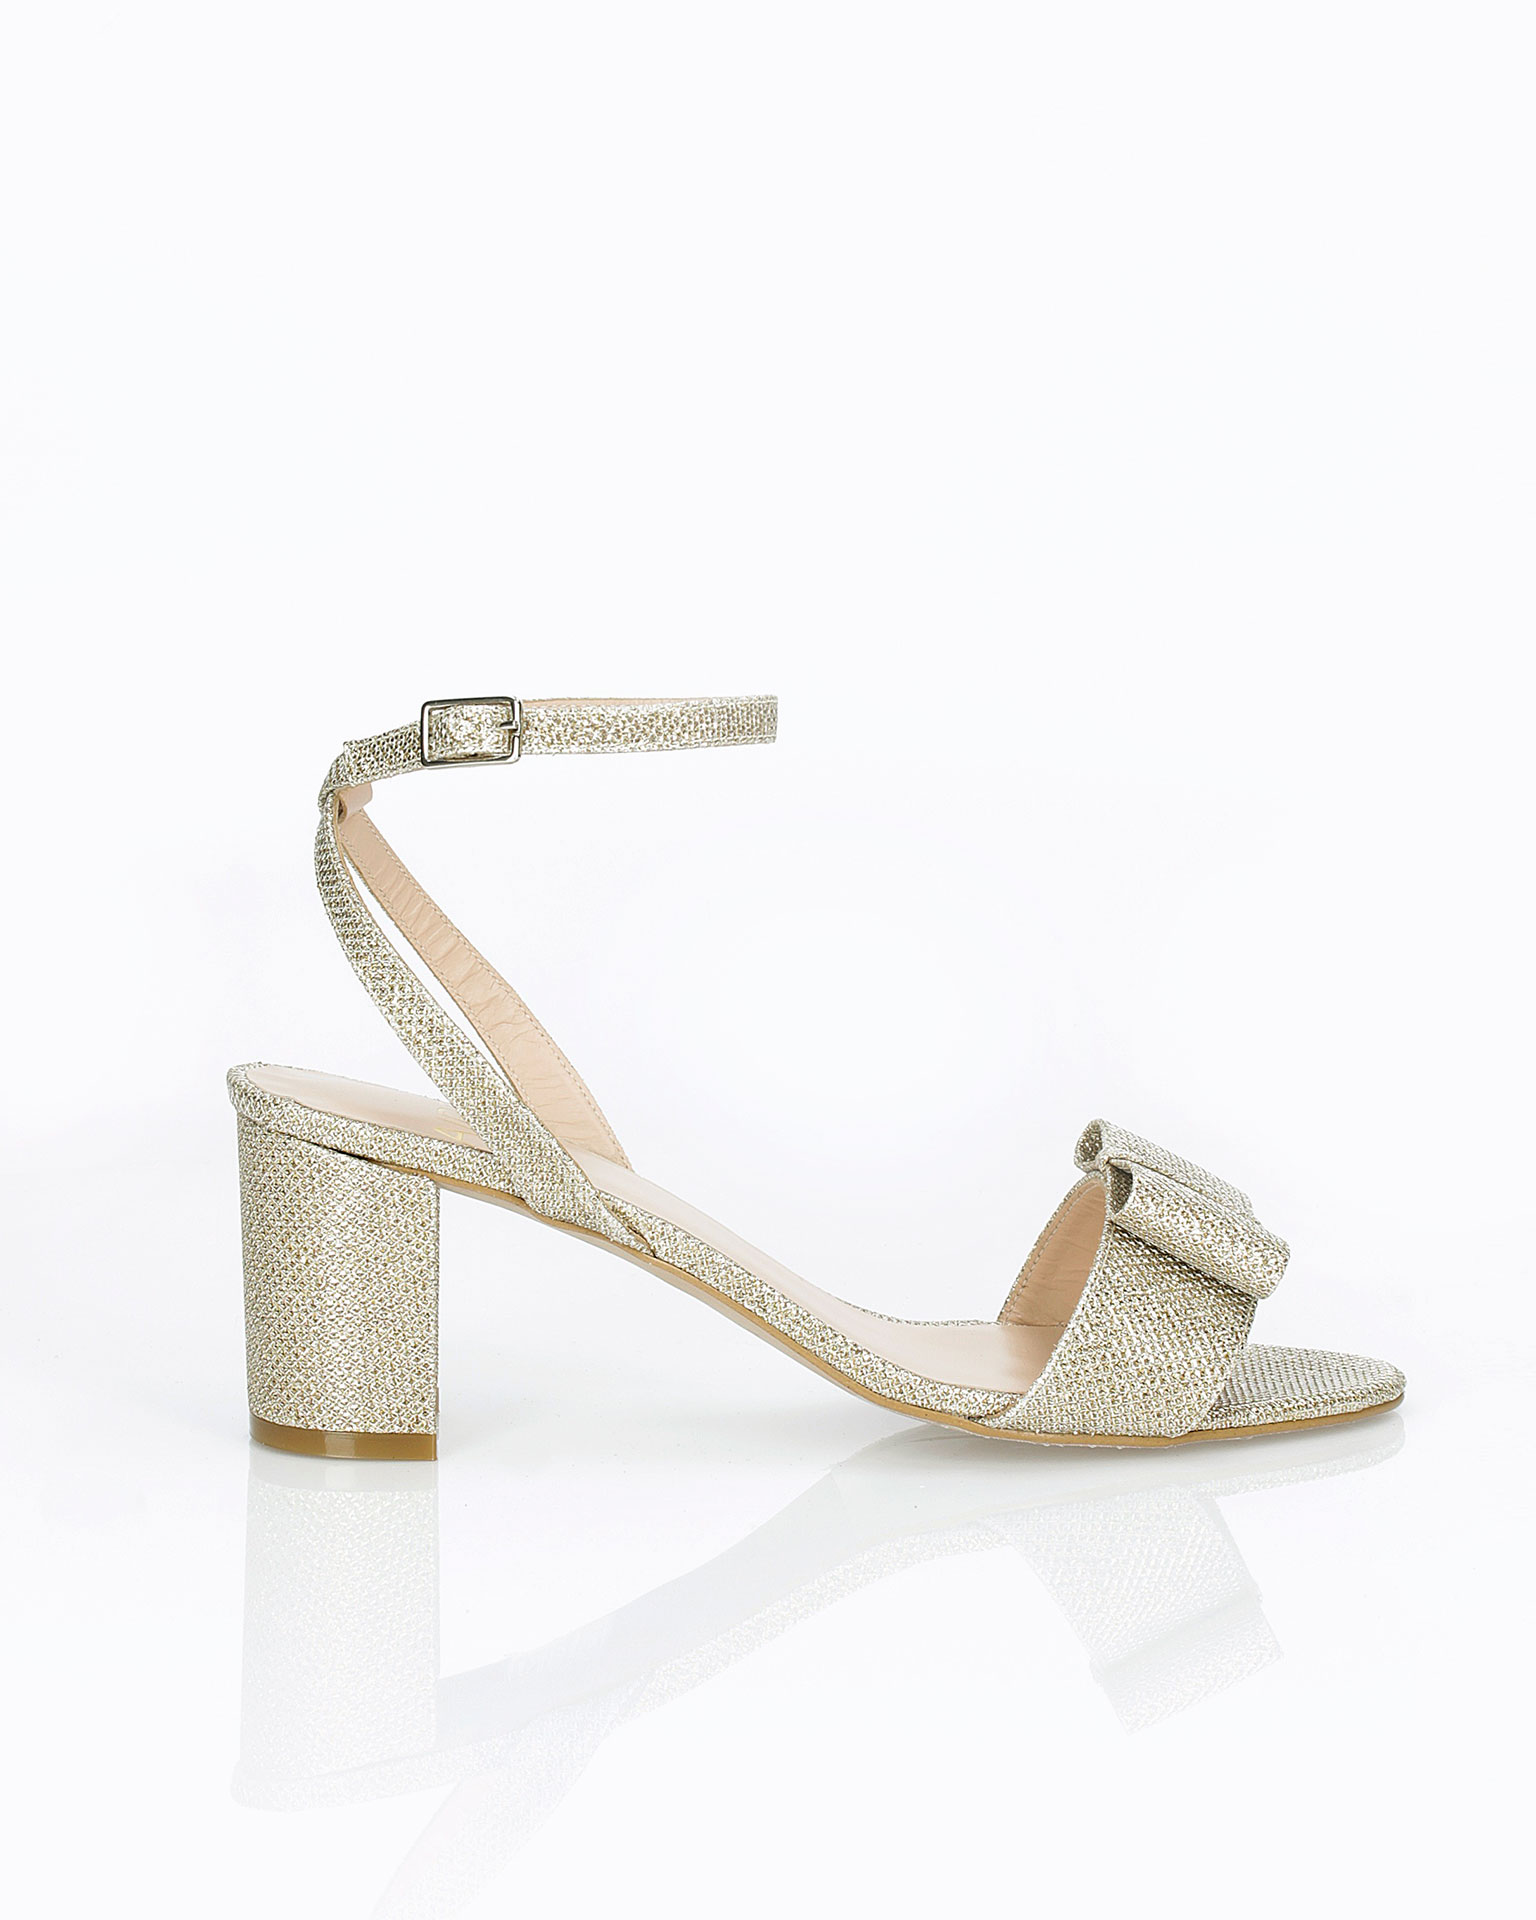 Woven fabric bridal sandal. With low heel, ankle strap and bow detail. Available in natural, gold and steel 2019 AIRE BARCELONA Collection.